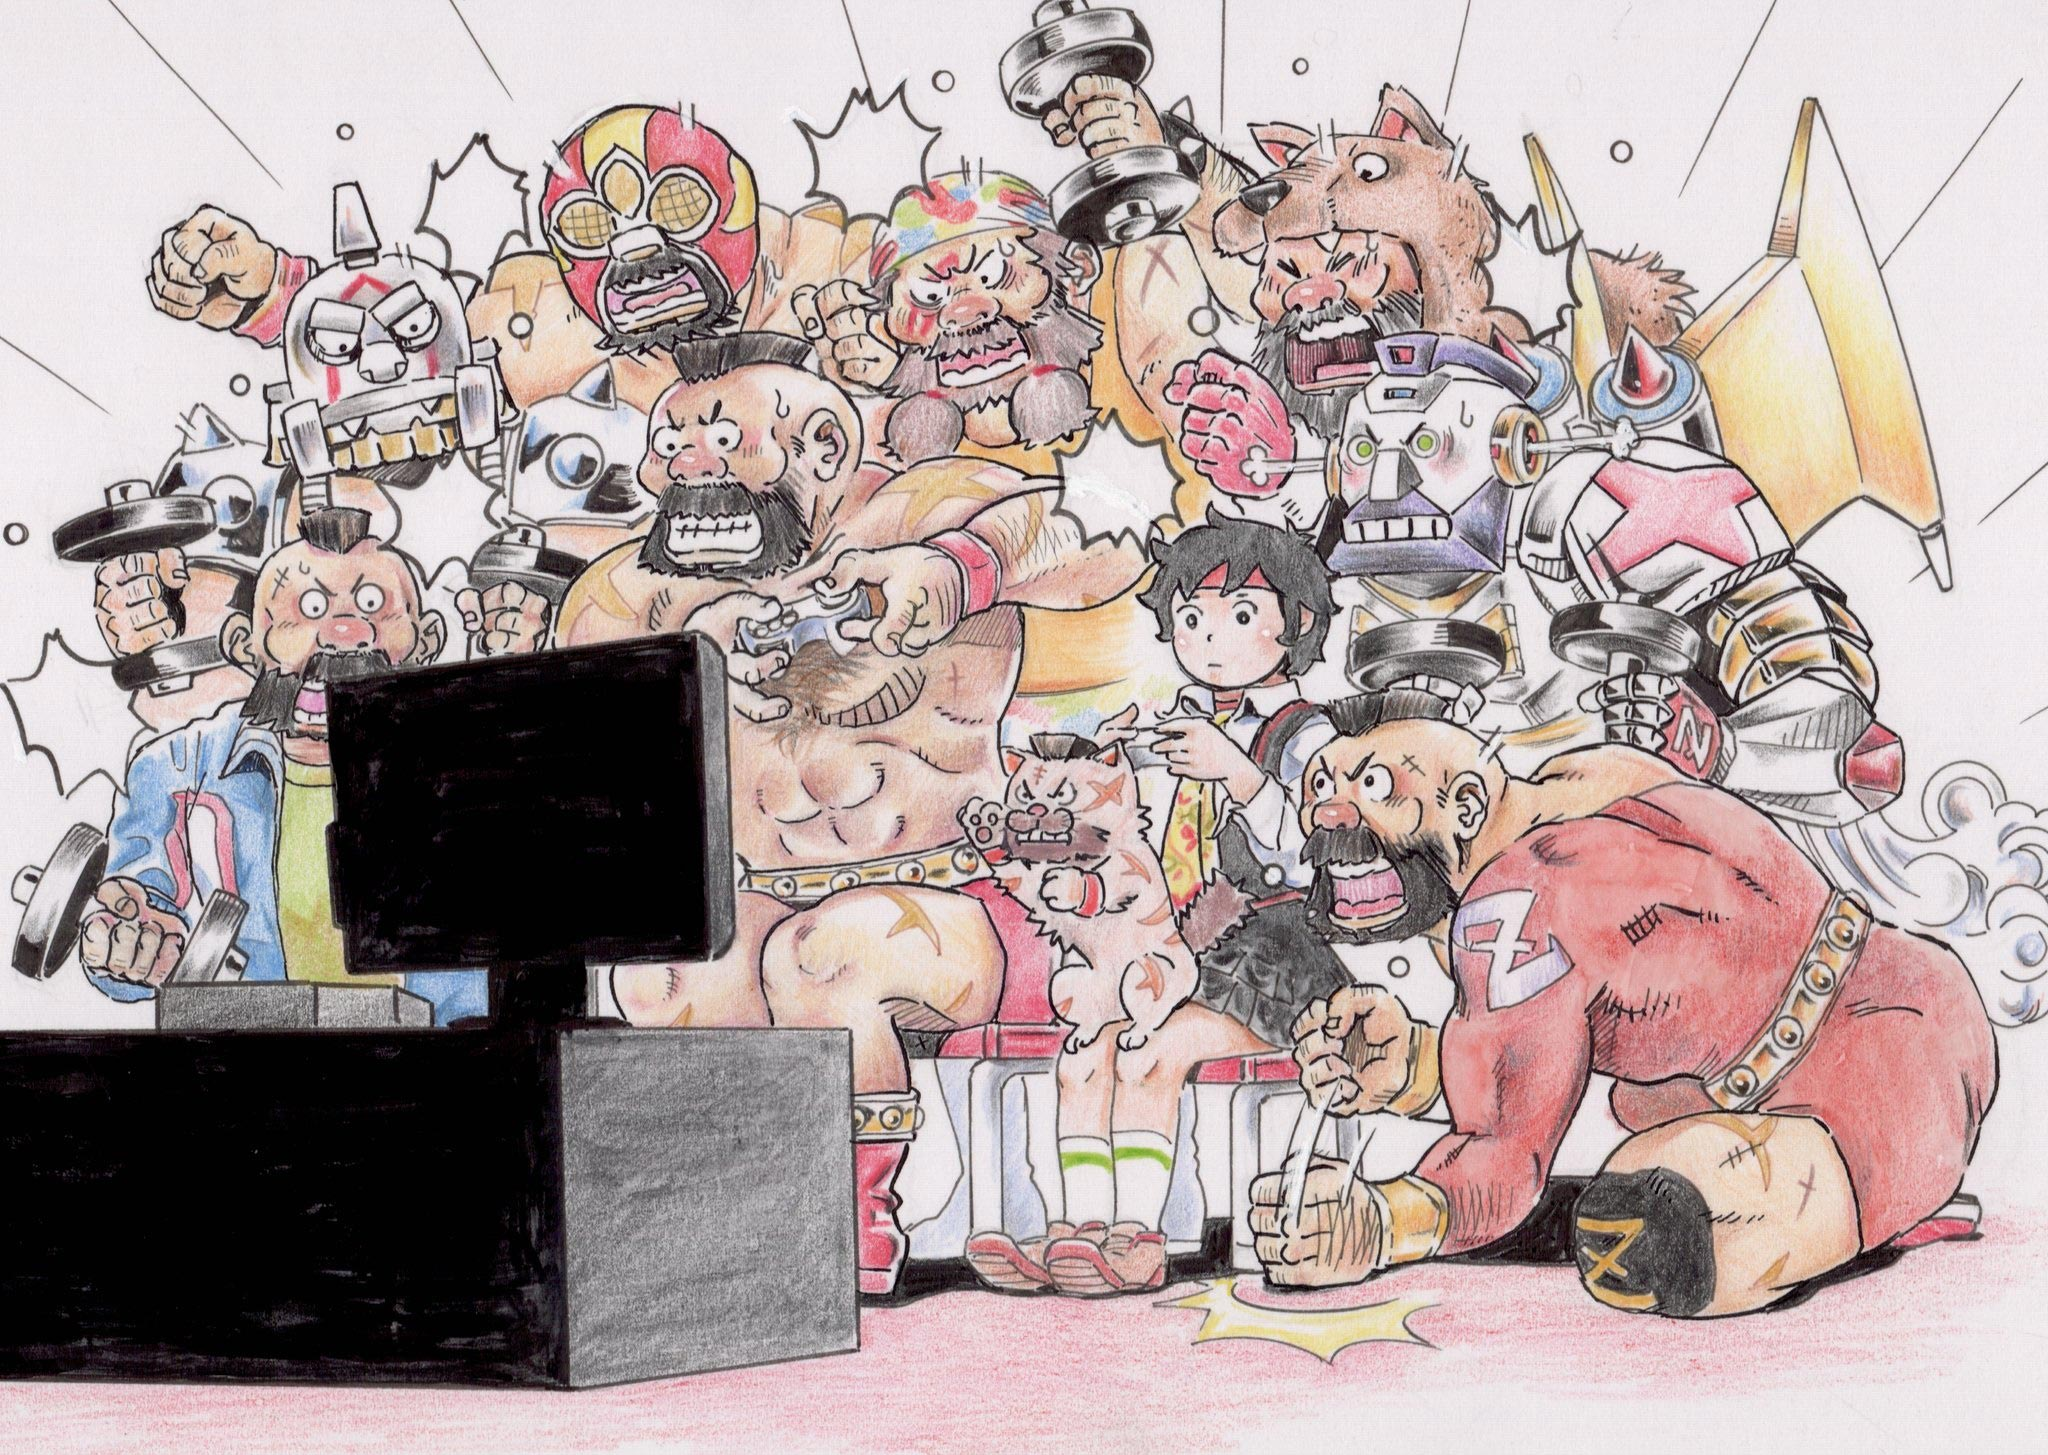 mame_708's Street Fighter 5 fan art 3 out of 8 image gallery